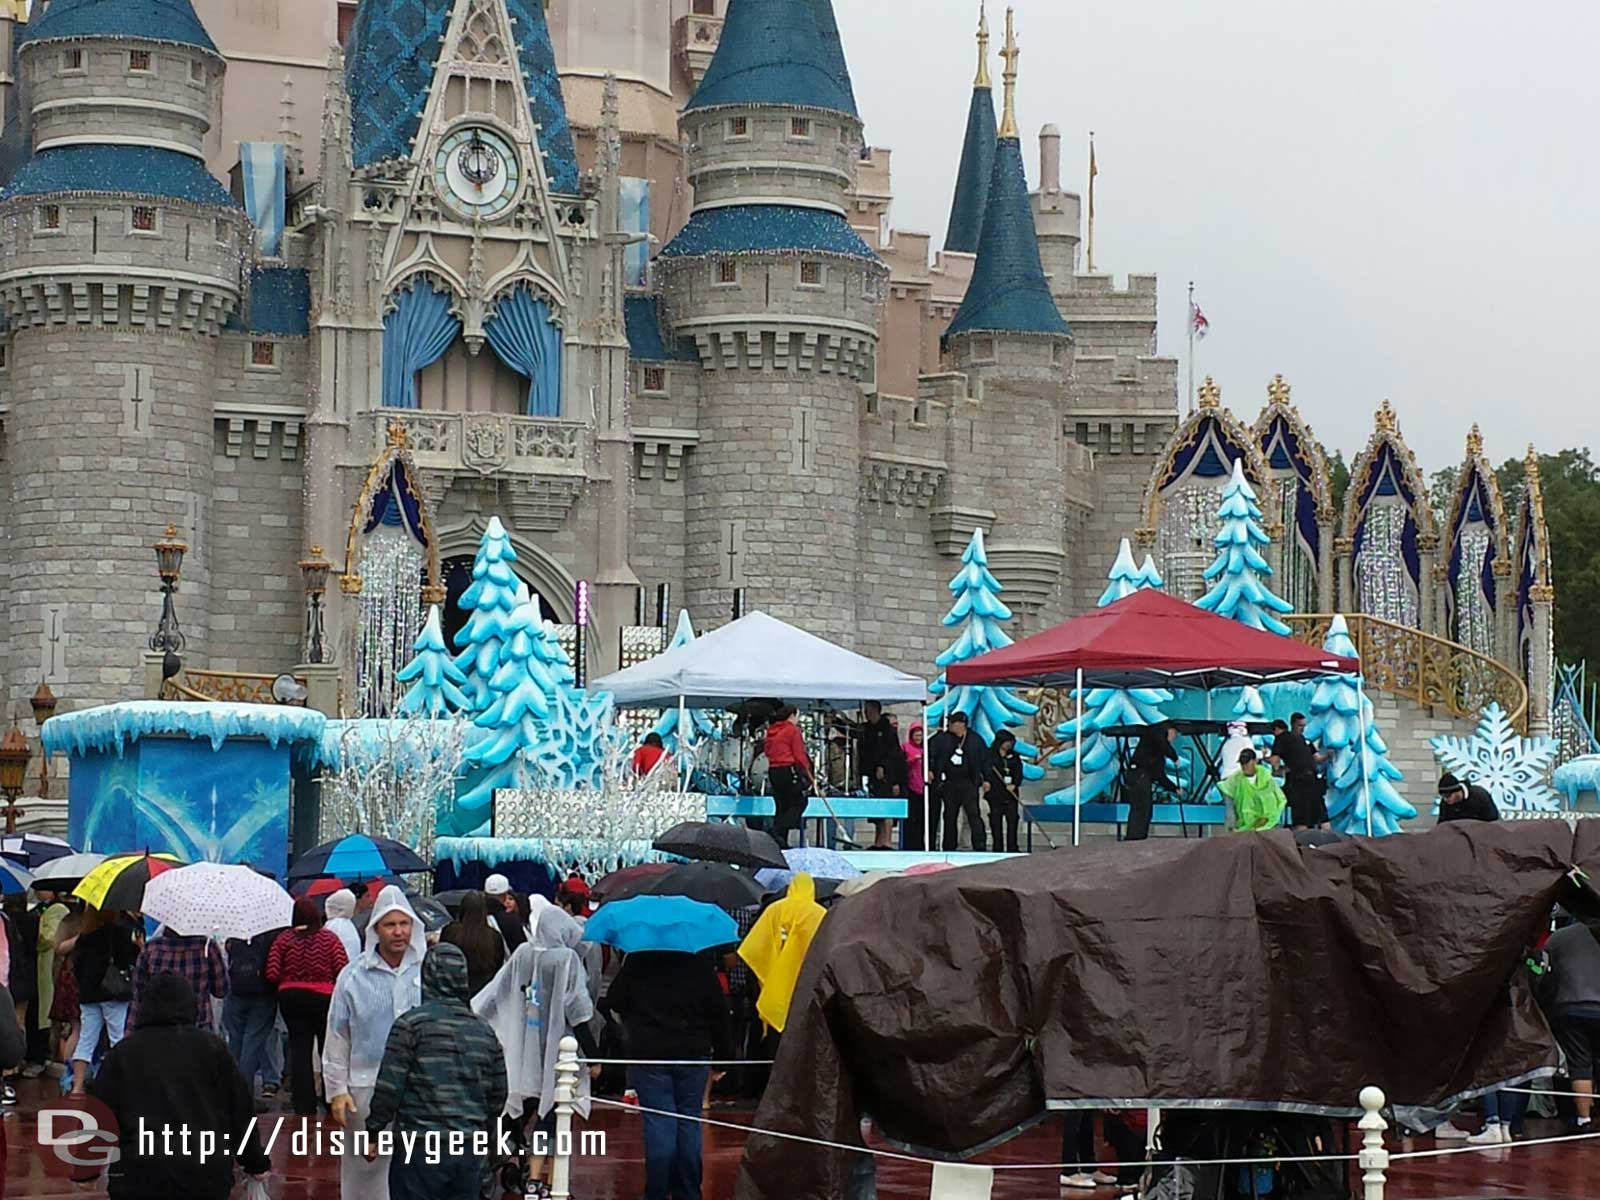 They are prepping the stage for the next performance #Frozen Christmas Celebration